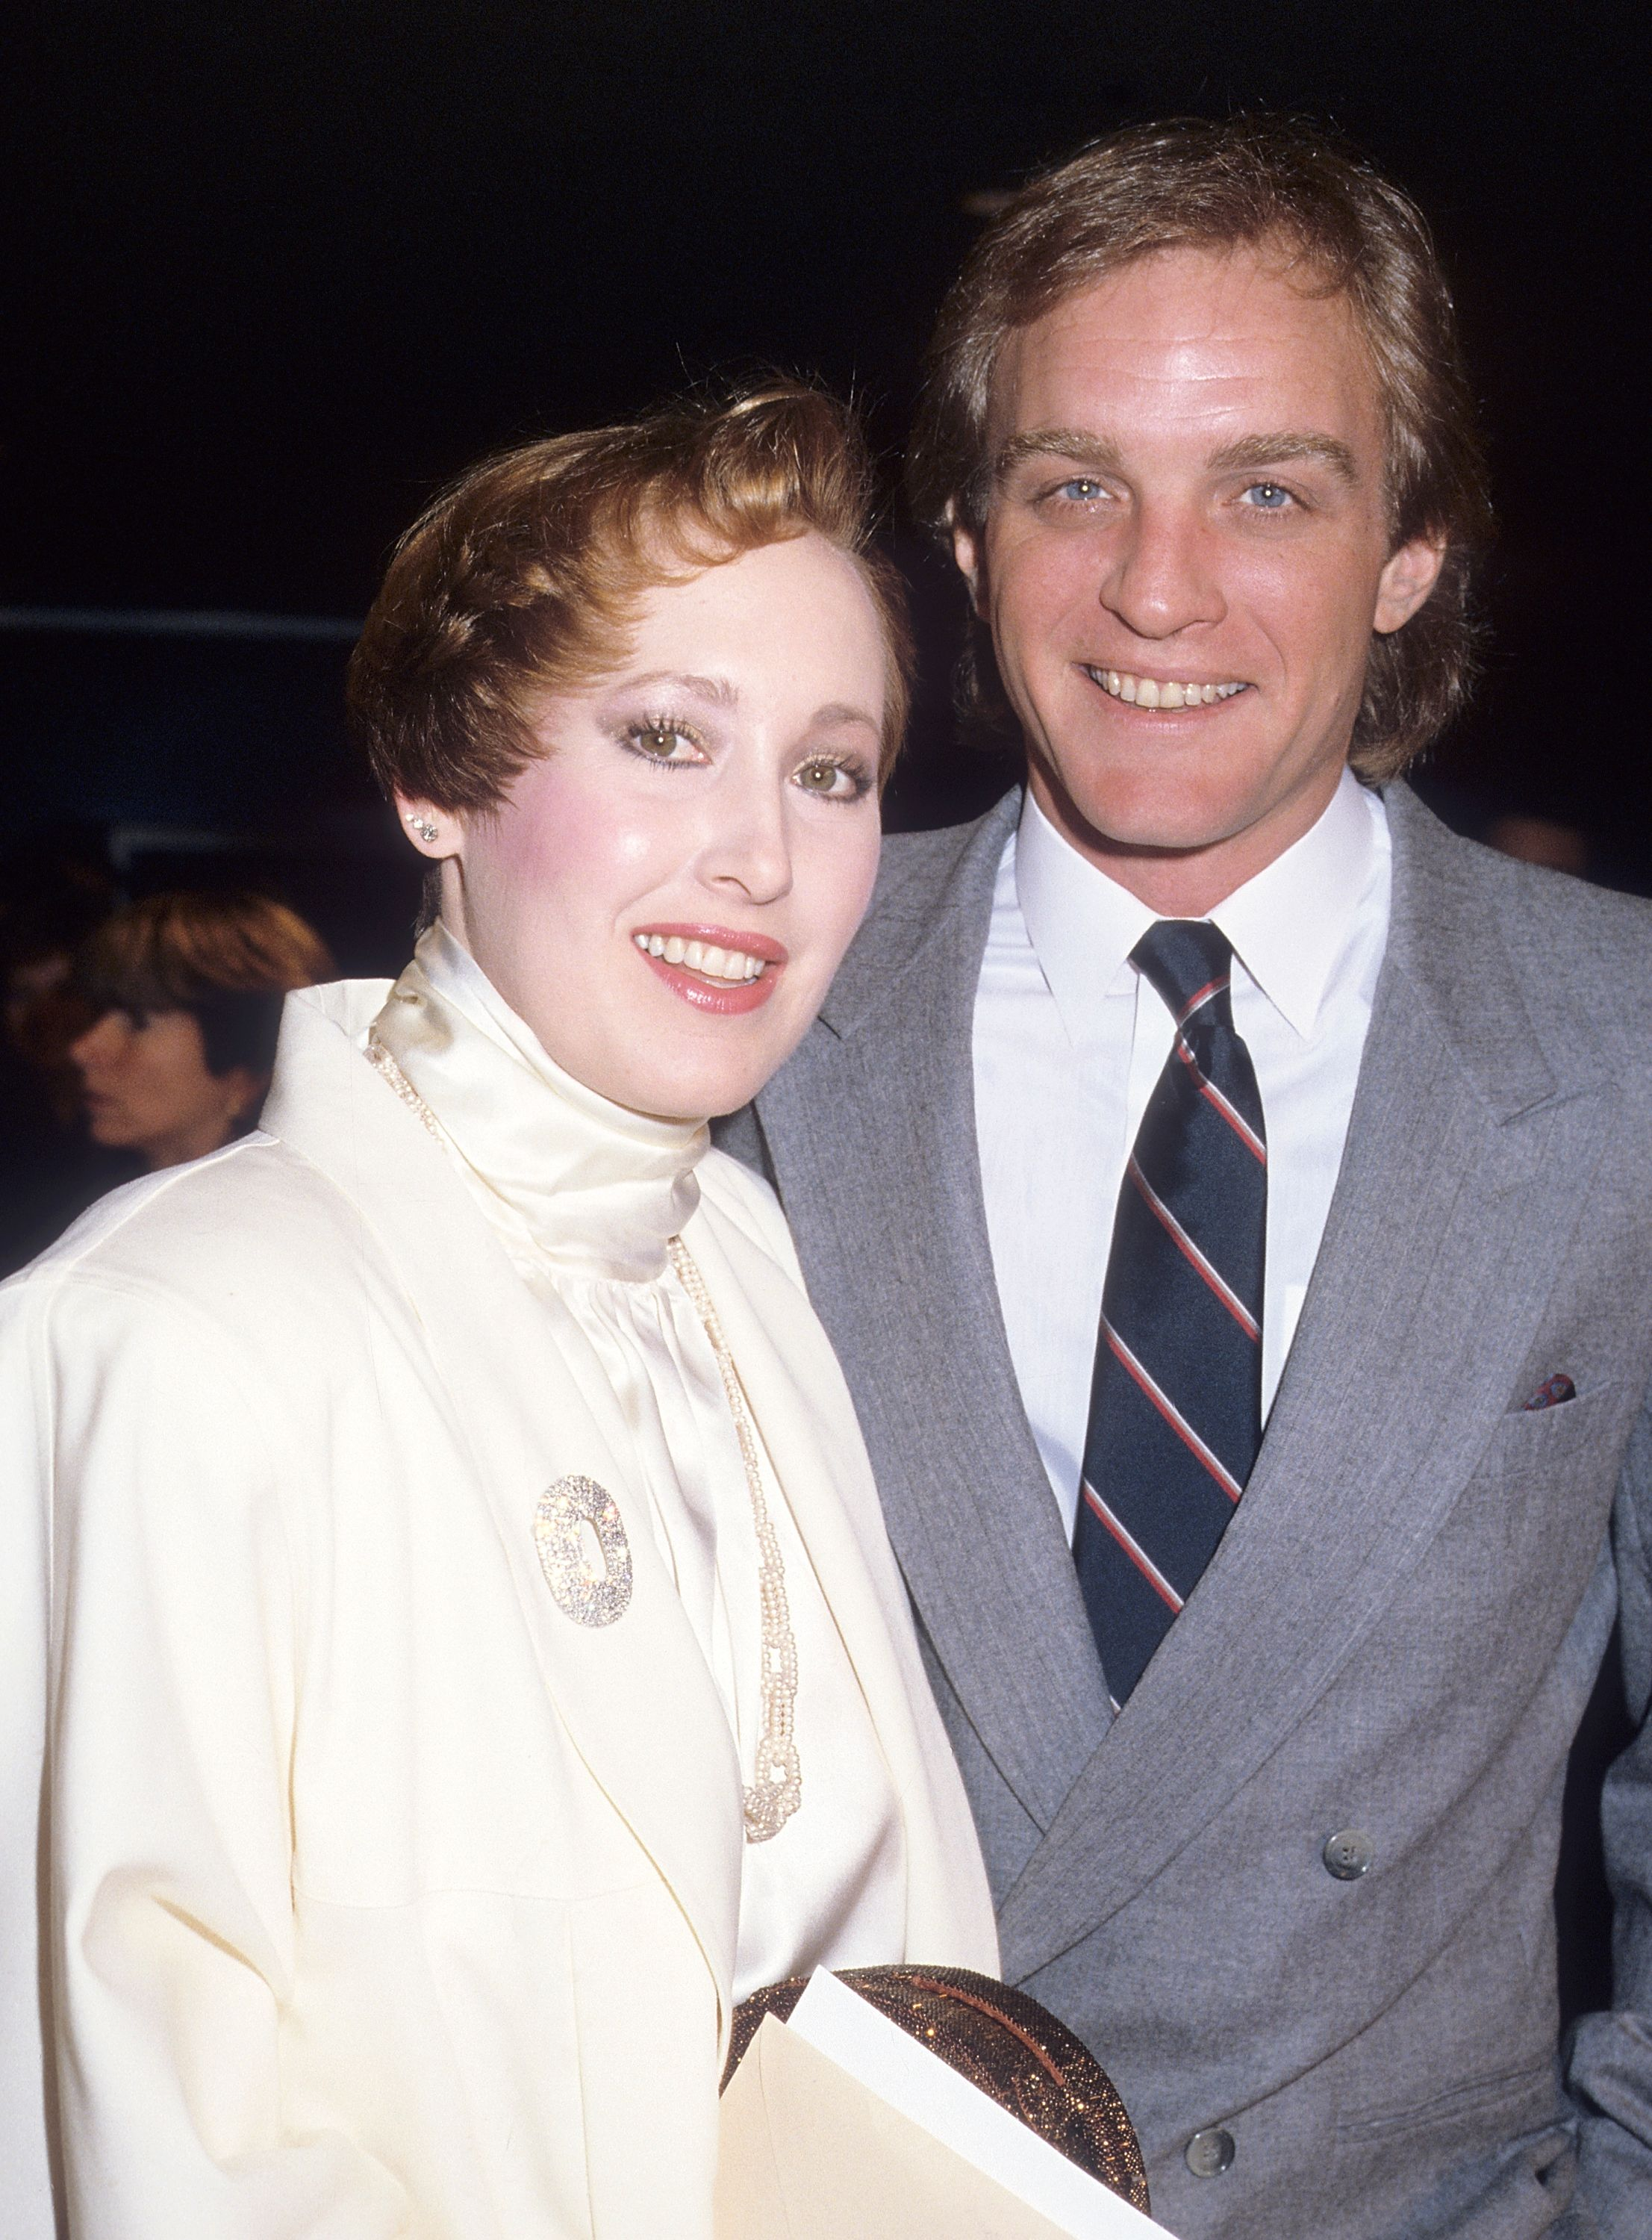 """Terry Lester and Susan Newman during the """"Out of Africa"""" Century City Premiere on December 10, 1985 at Plitt's Century Plaza Theatres in Century City, California. 